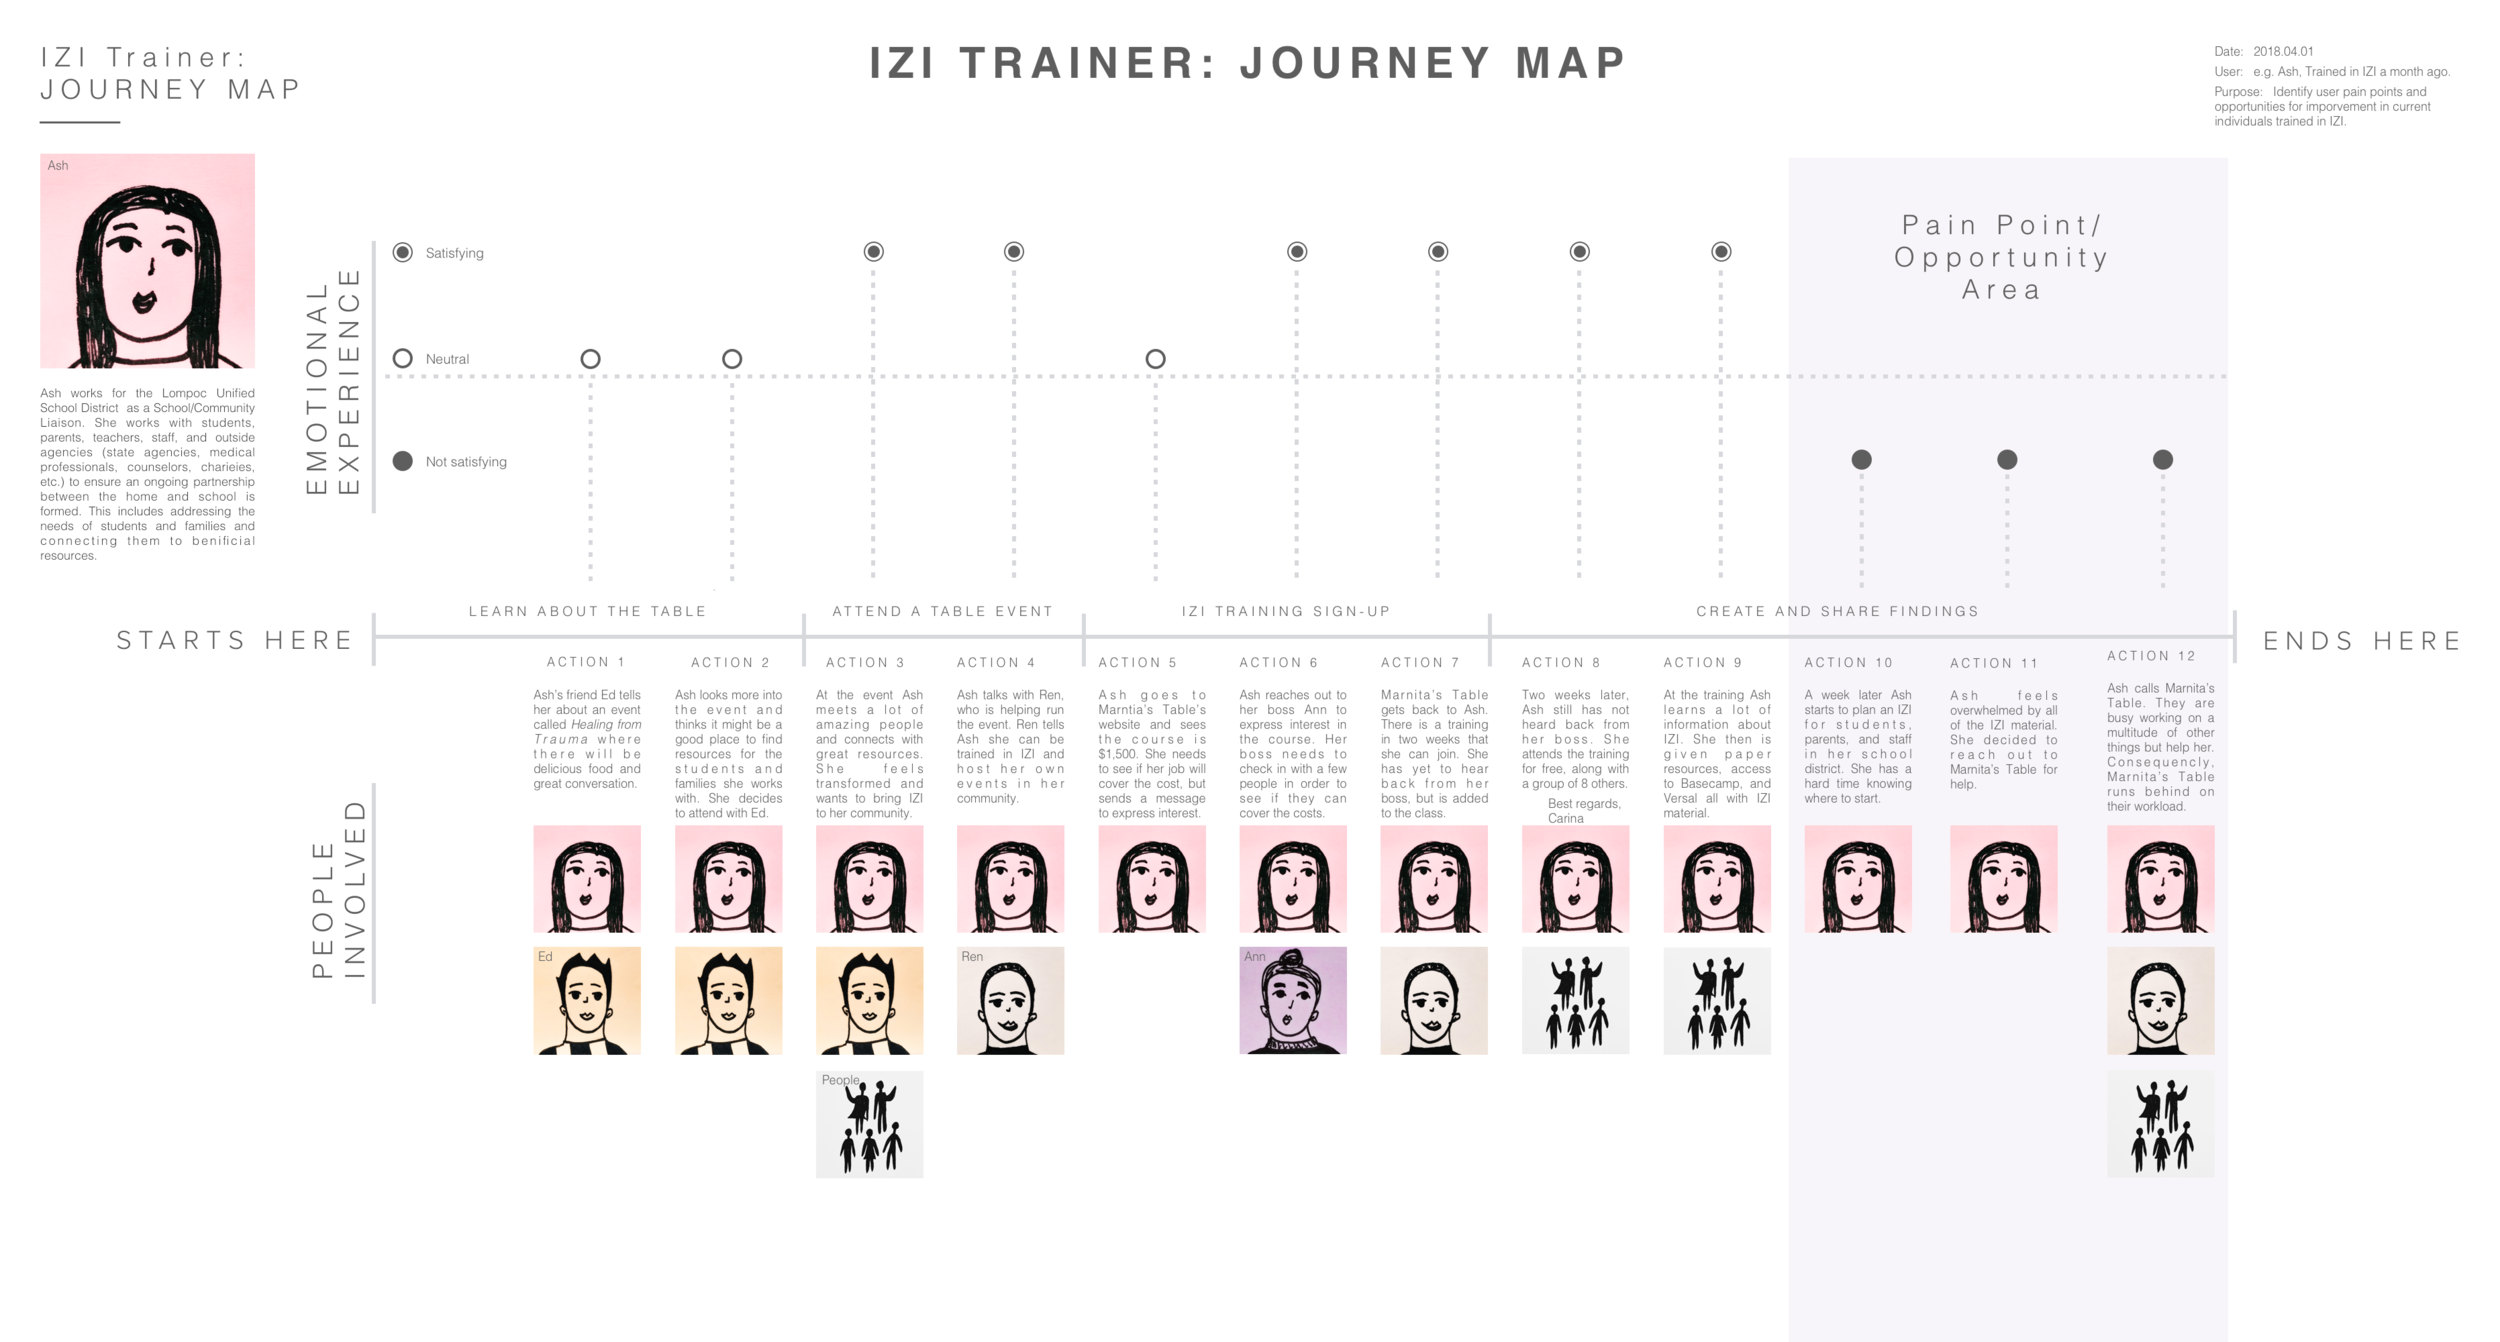 The journey map walked through the experience of a user being trained in IZI and then planning her own IZI event.